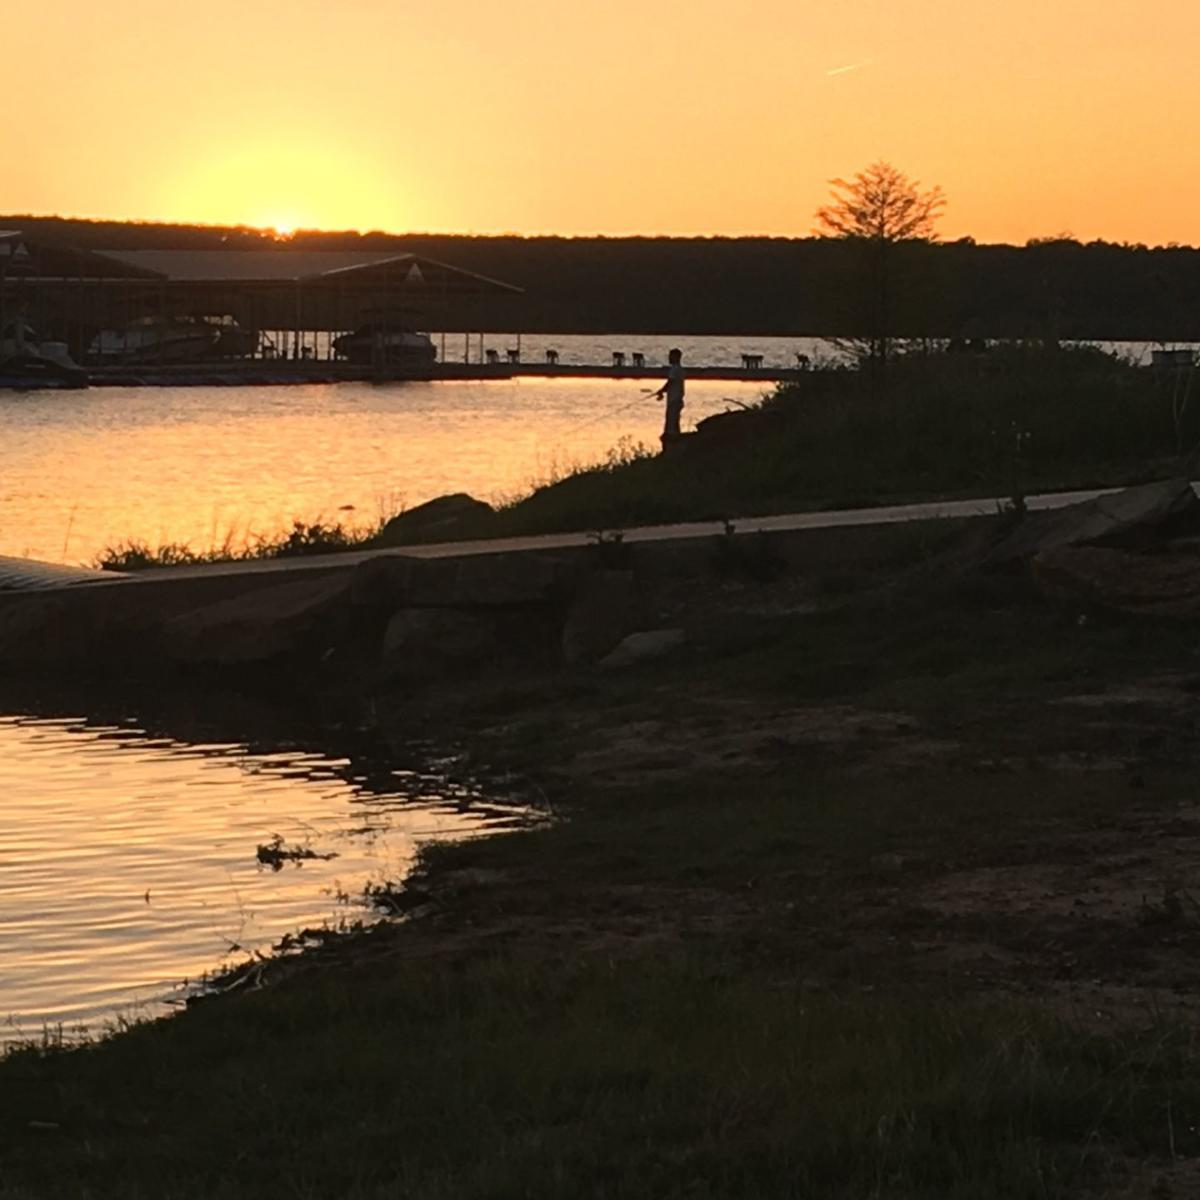 Northeast oklahoma fishing report january 31 2018 for Fishing forecast oklahoma